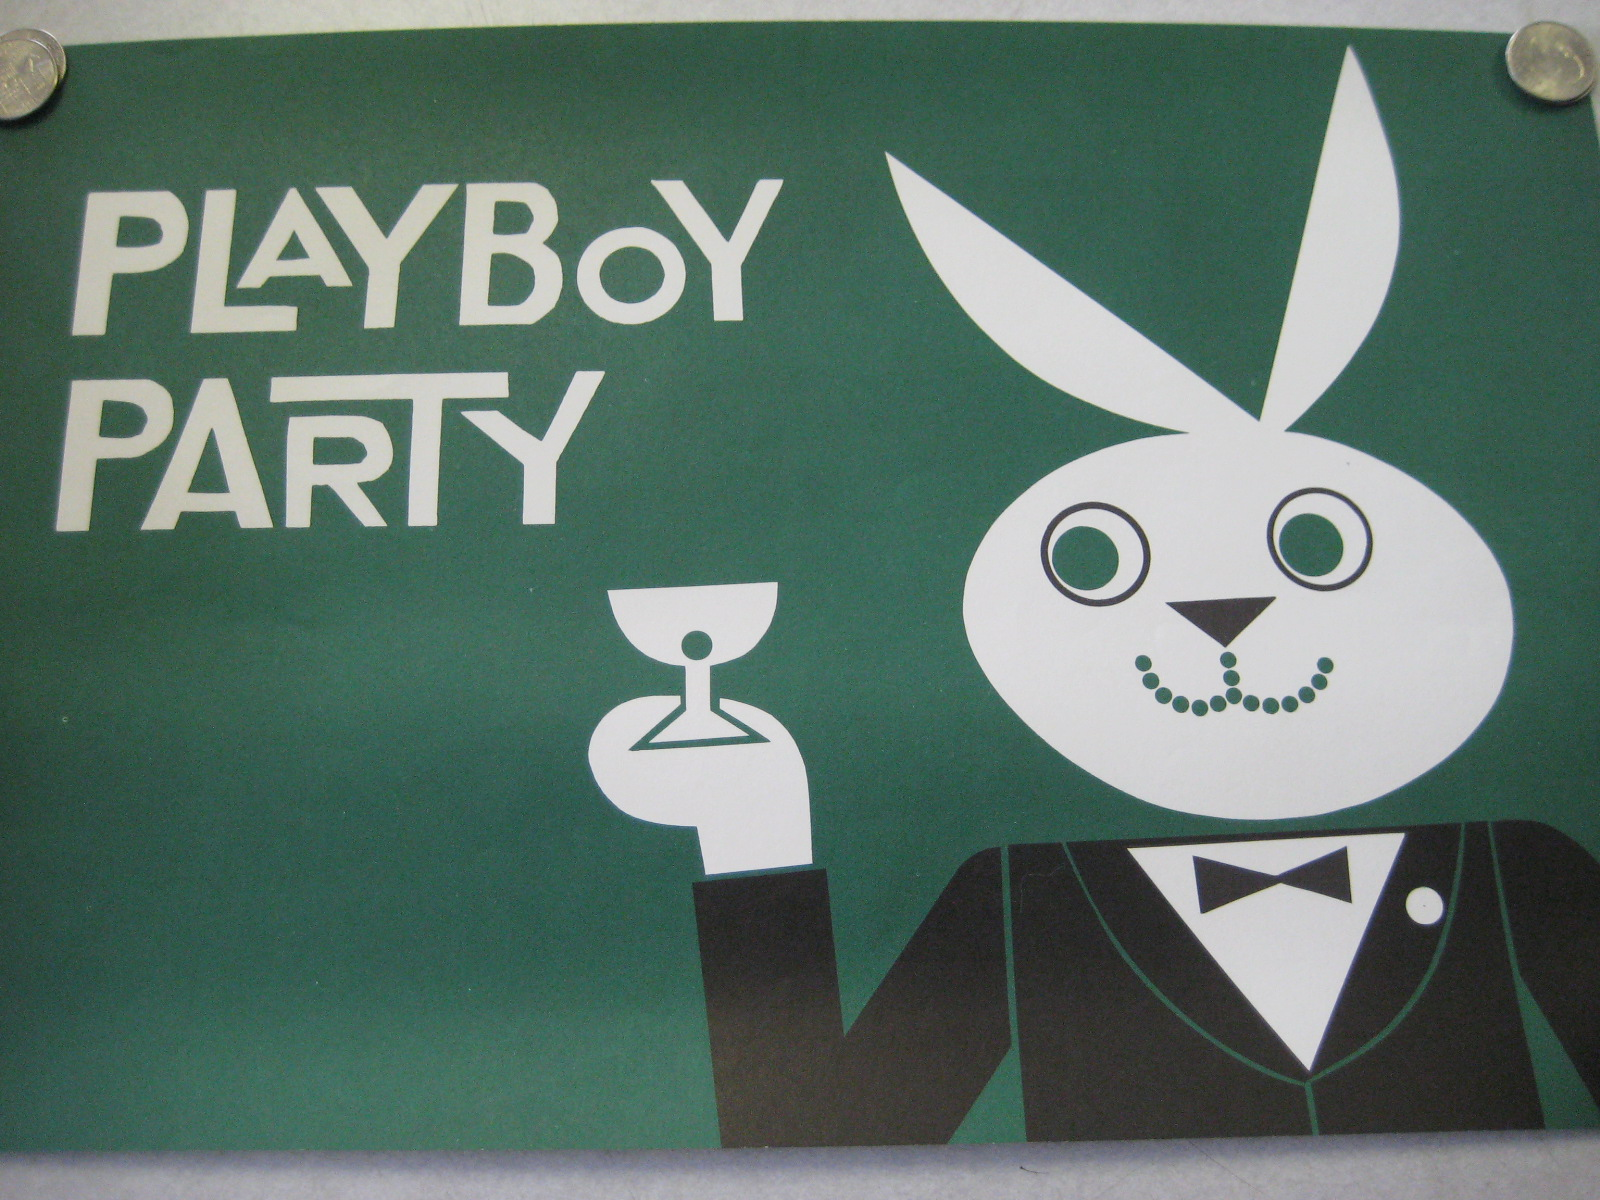 Playboy Party Place mat Green